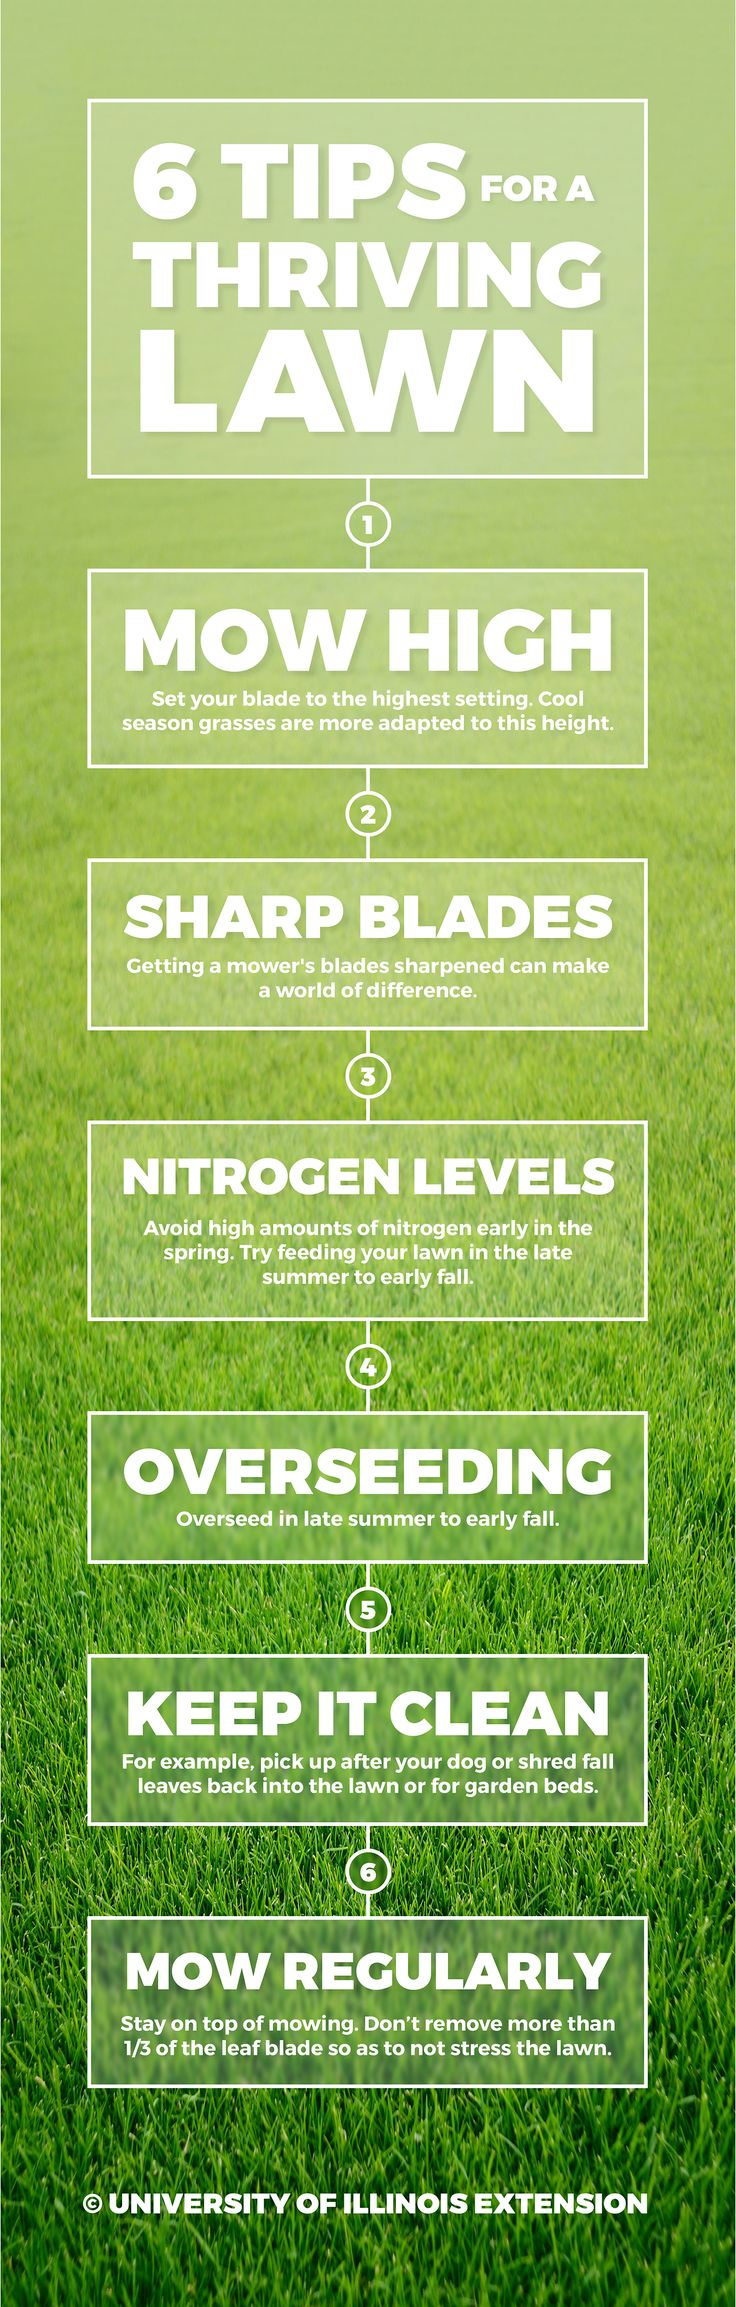 6 Tips for a Thriving Lawn #gardening #landscape